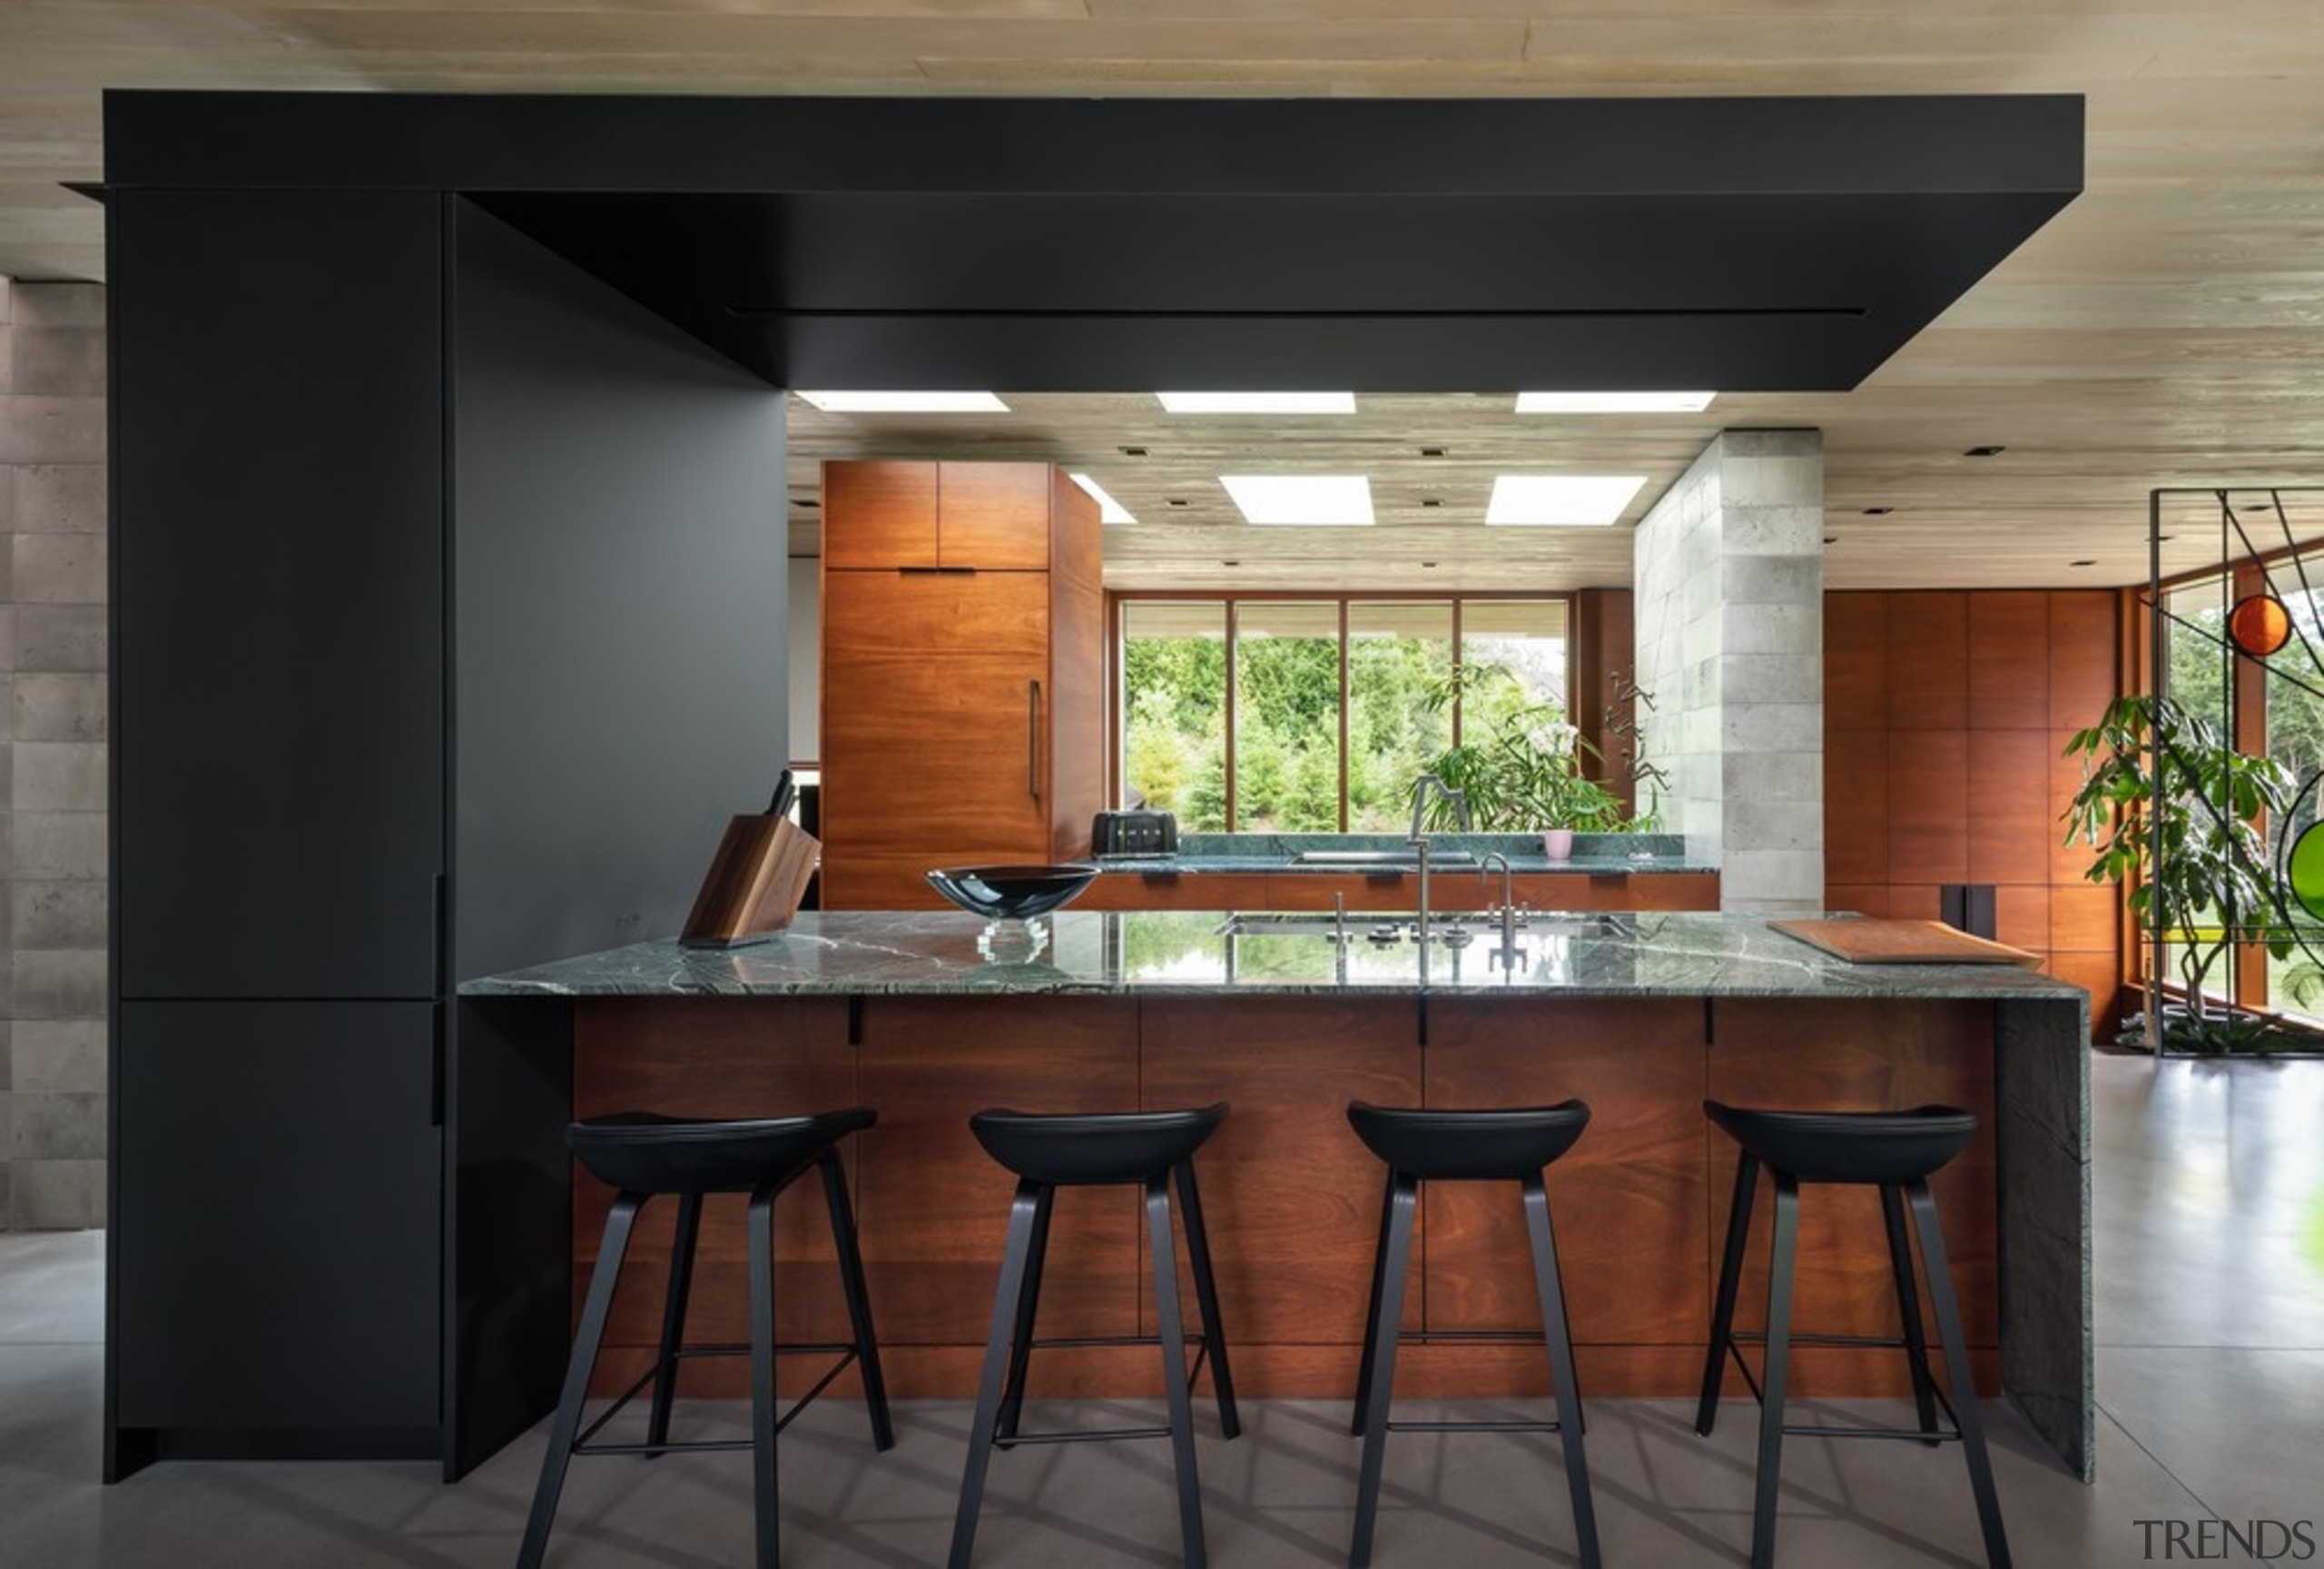 The kitchen island is framed by a wrap-over architecture, bar stool, building, cabinetry, ceiling, countertop, design, dining room, floor, flooring, furniture, hardwood, home, house, interior design, kitchen, kitchen & dining room table, lighting, material property, plywood, property, real estate, room, stool, table, tile, wood stain, black